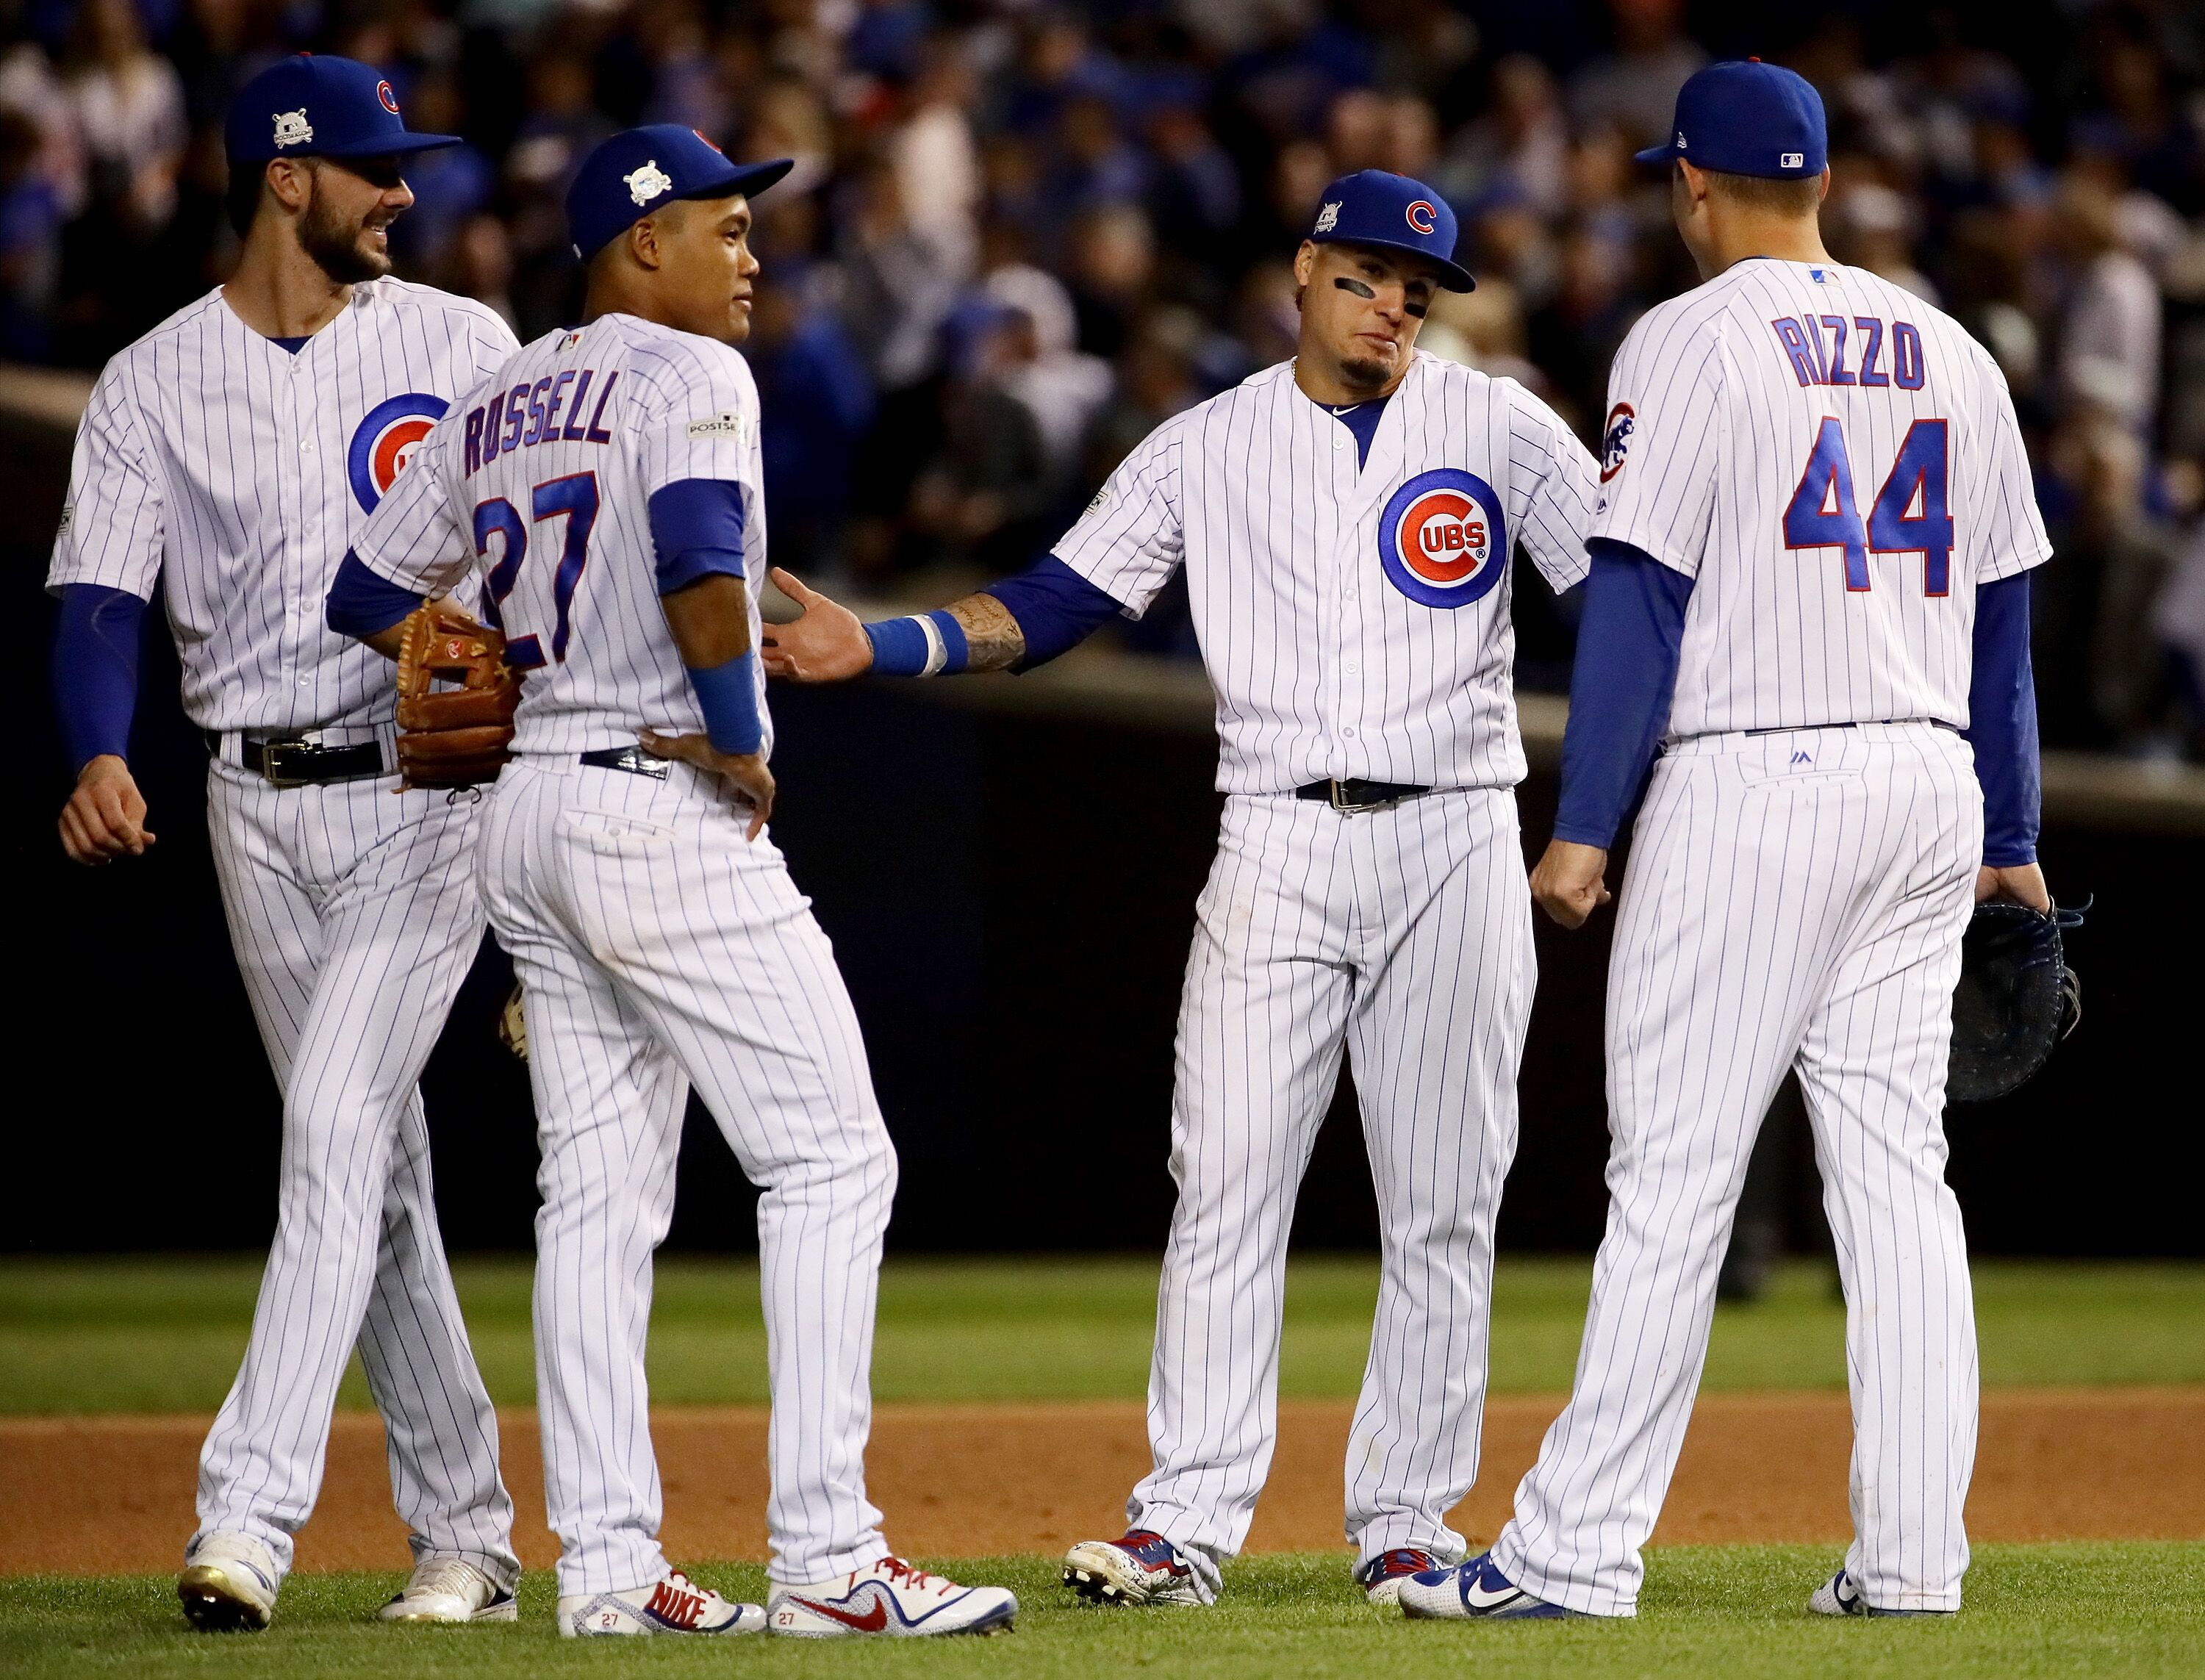 862945474-league-championship-series-los-angeles-dodgers-v-chicago-cubs-game-four.jpg